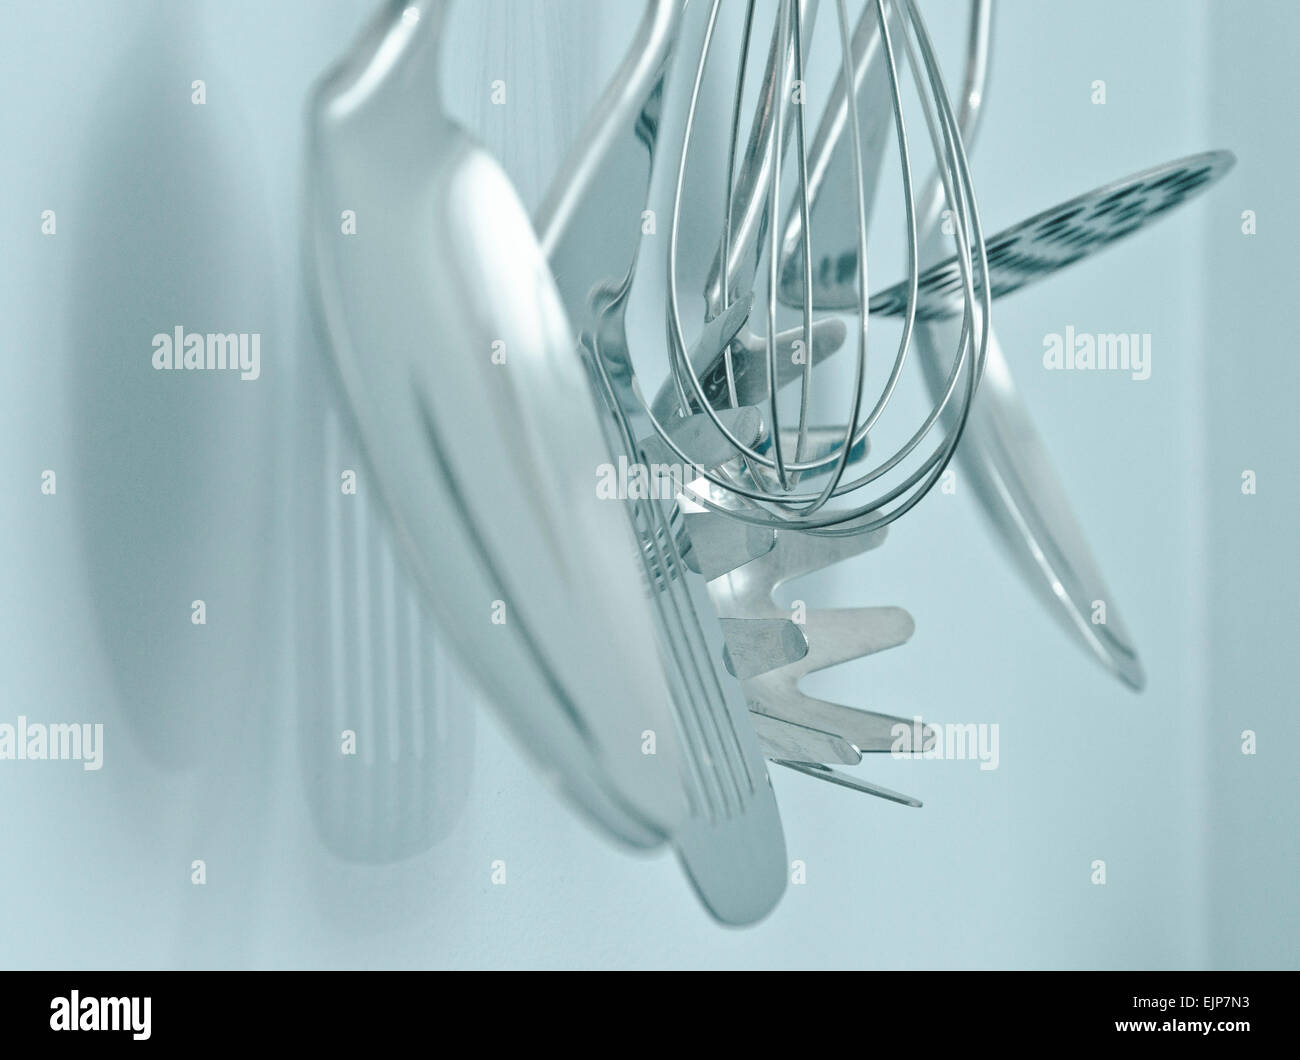 Kitchen Utensils Stock Photos & Kitchen Utensils Stock Images - Page ...